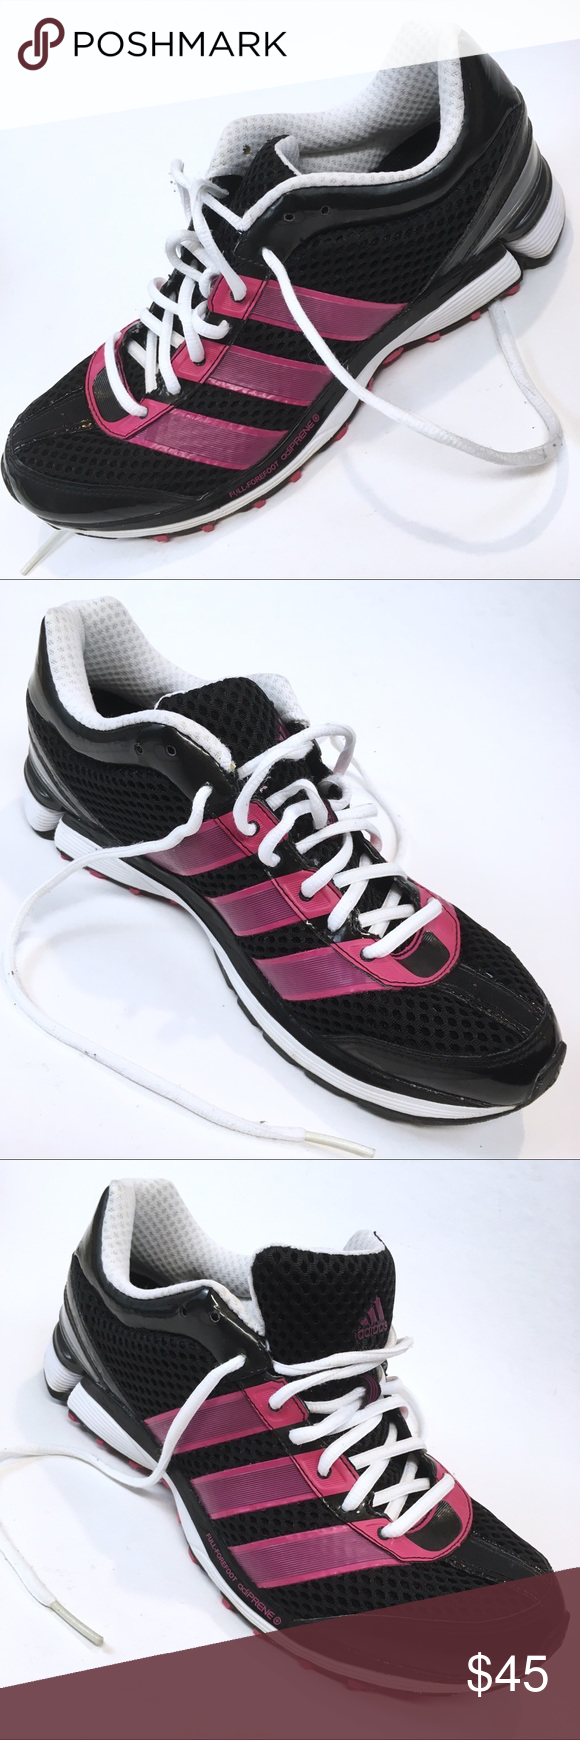 a419c31567a adidas adizero FULL-FOREFOOT adiPRENE Black Pink These black with pink  stripes adidas adizero FULL-FOREFOOT adiPRENE running gym shoes are in very  good ...